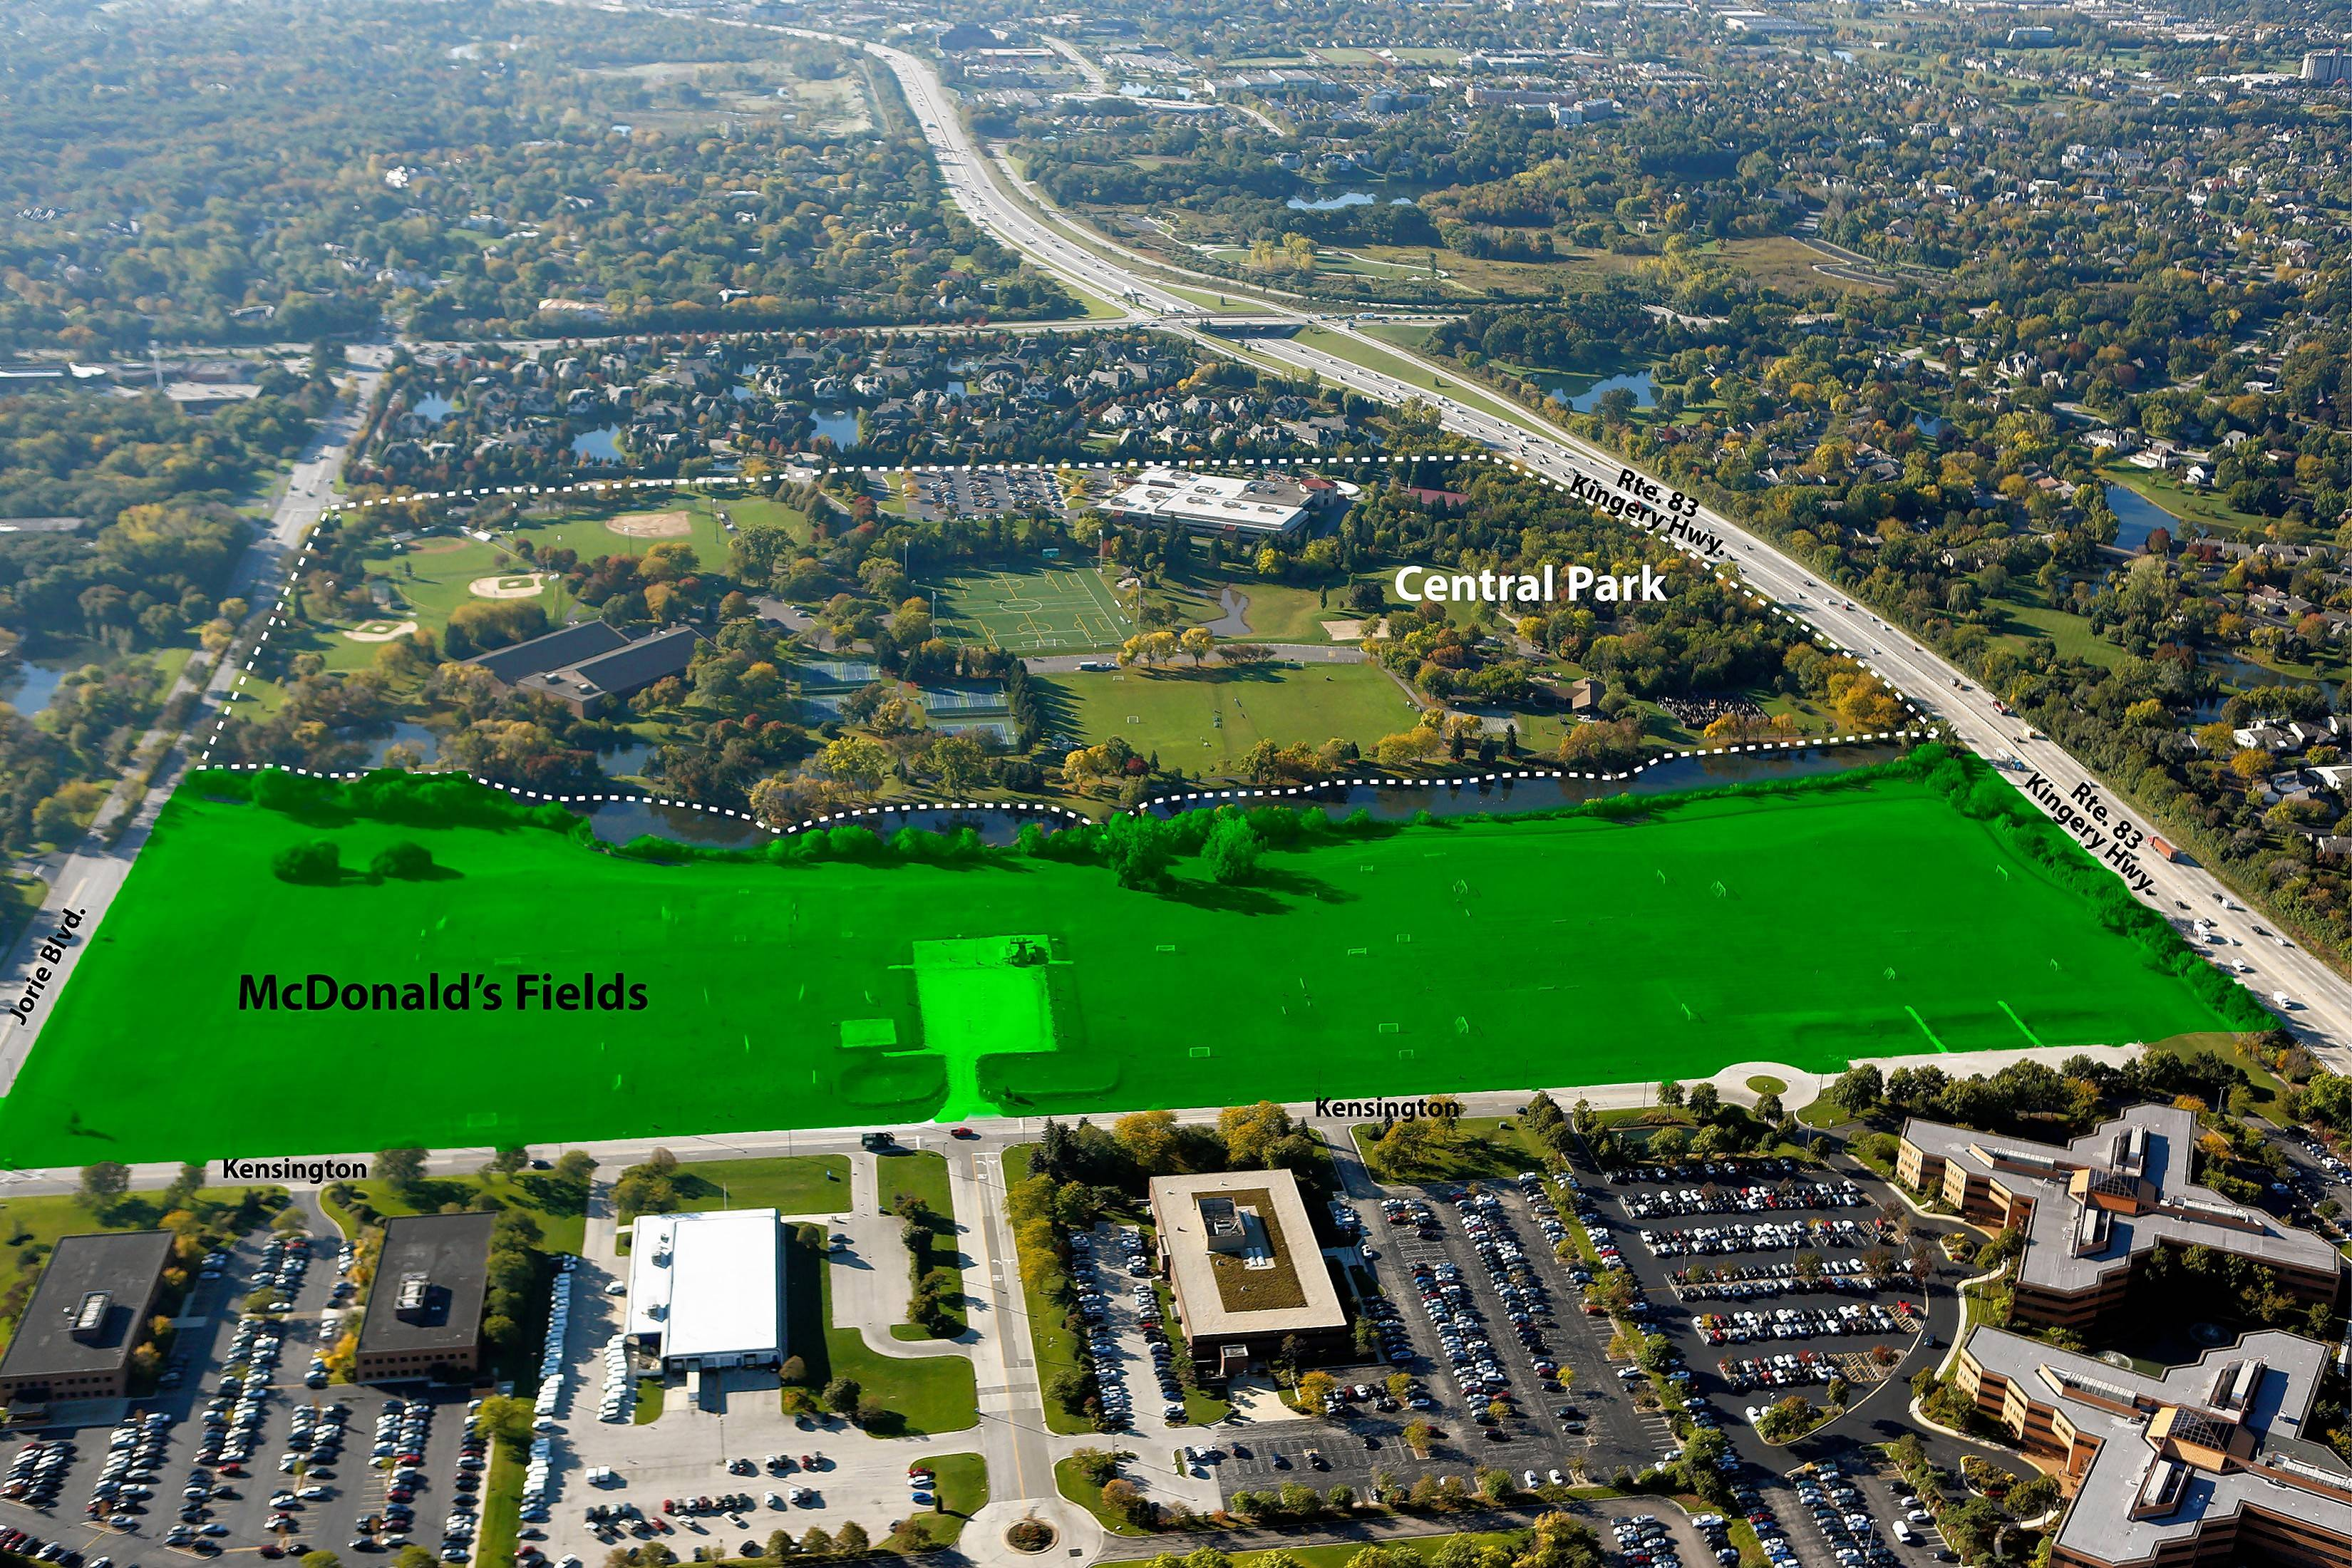 Oak Brook Park District is seeking permission from voters to borrow $17.9 million to buy roughly 34 acres known as the McDonald's Soccer Fields.